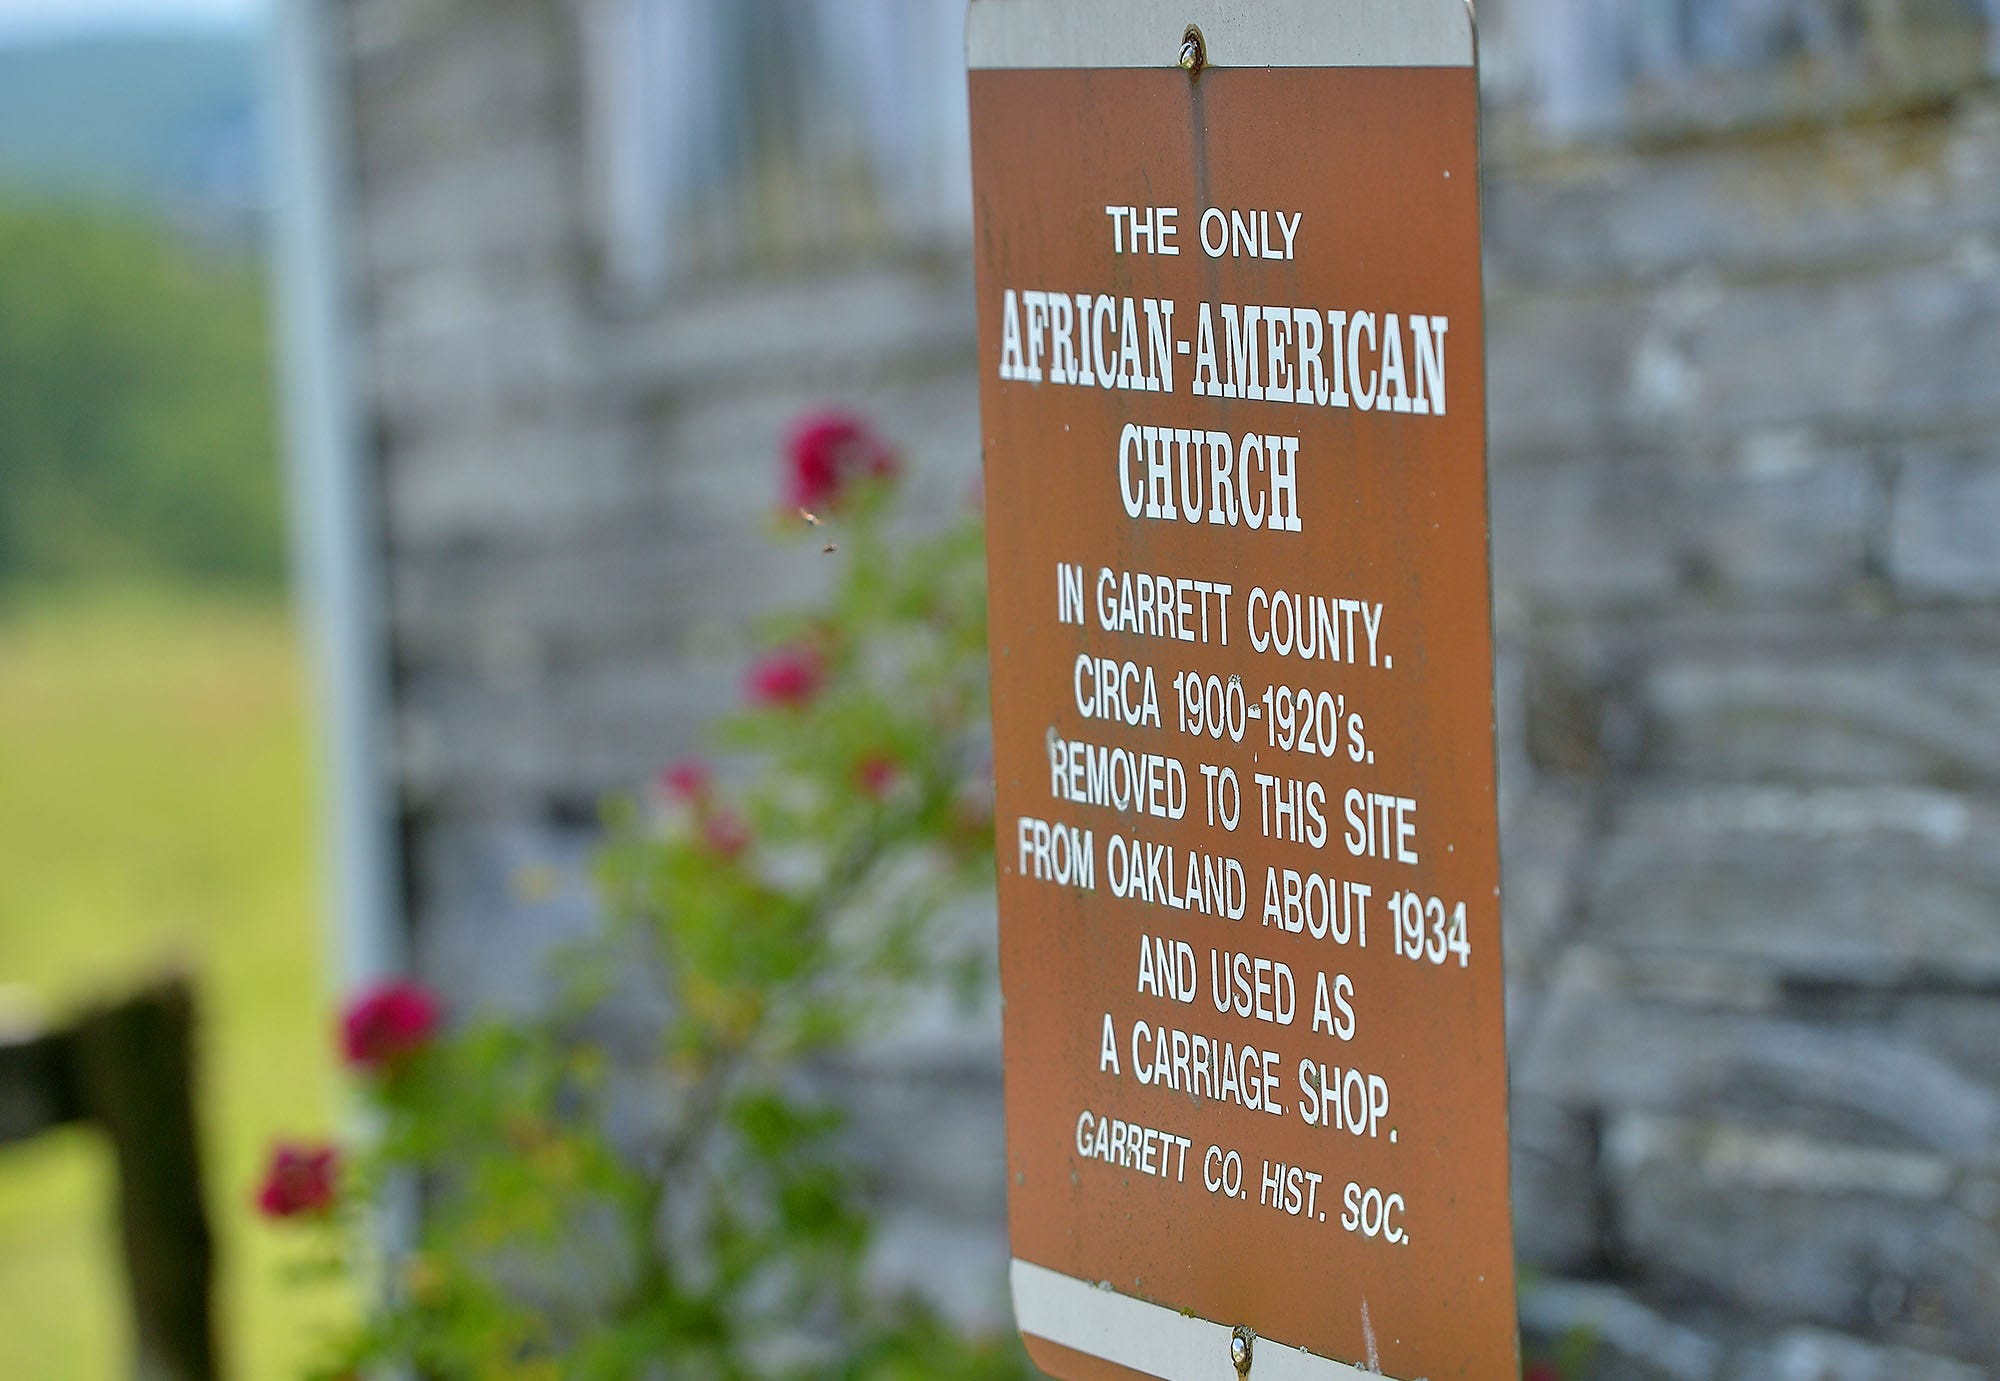 A historical marker, placed by the Garrett County Historical Society, sits outside the Bethel A.M.E. church located on a family farm south of Oakland, Md.